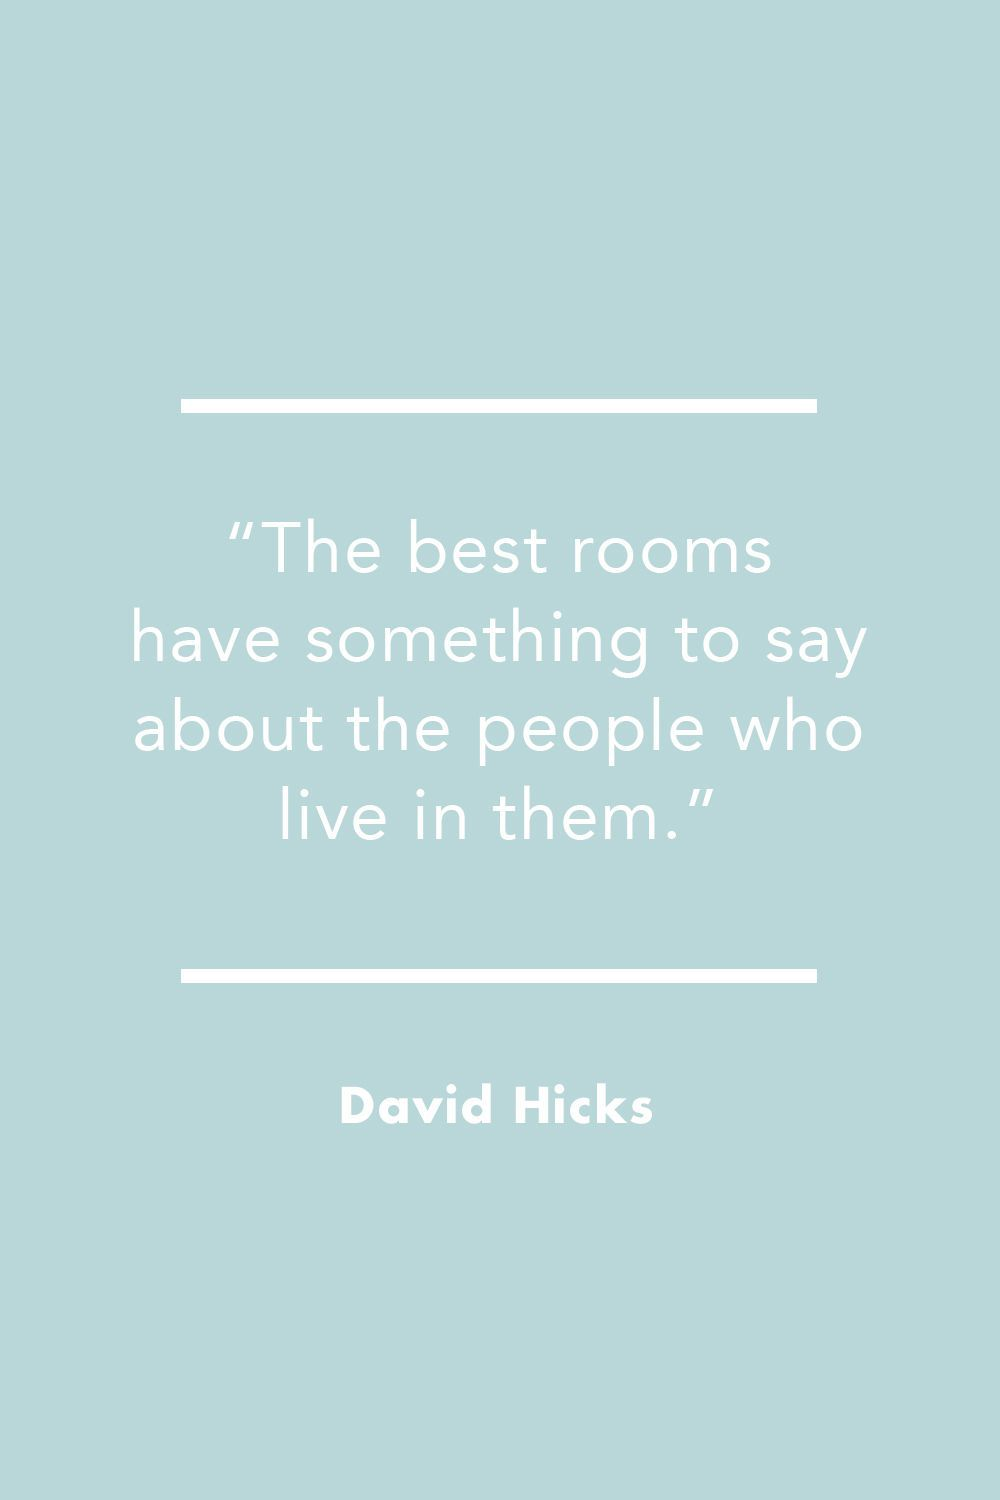 Our Favorite Quotes About Design Are Full of Inspiration